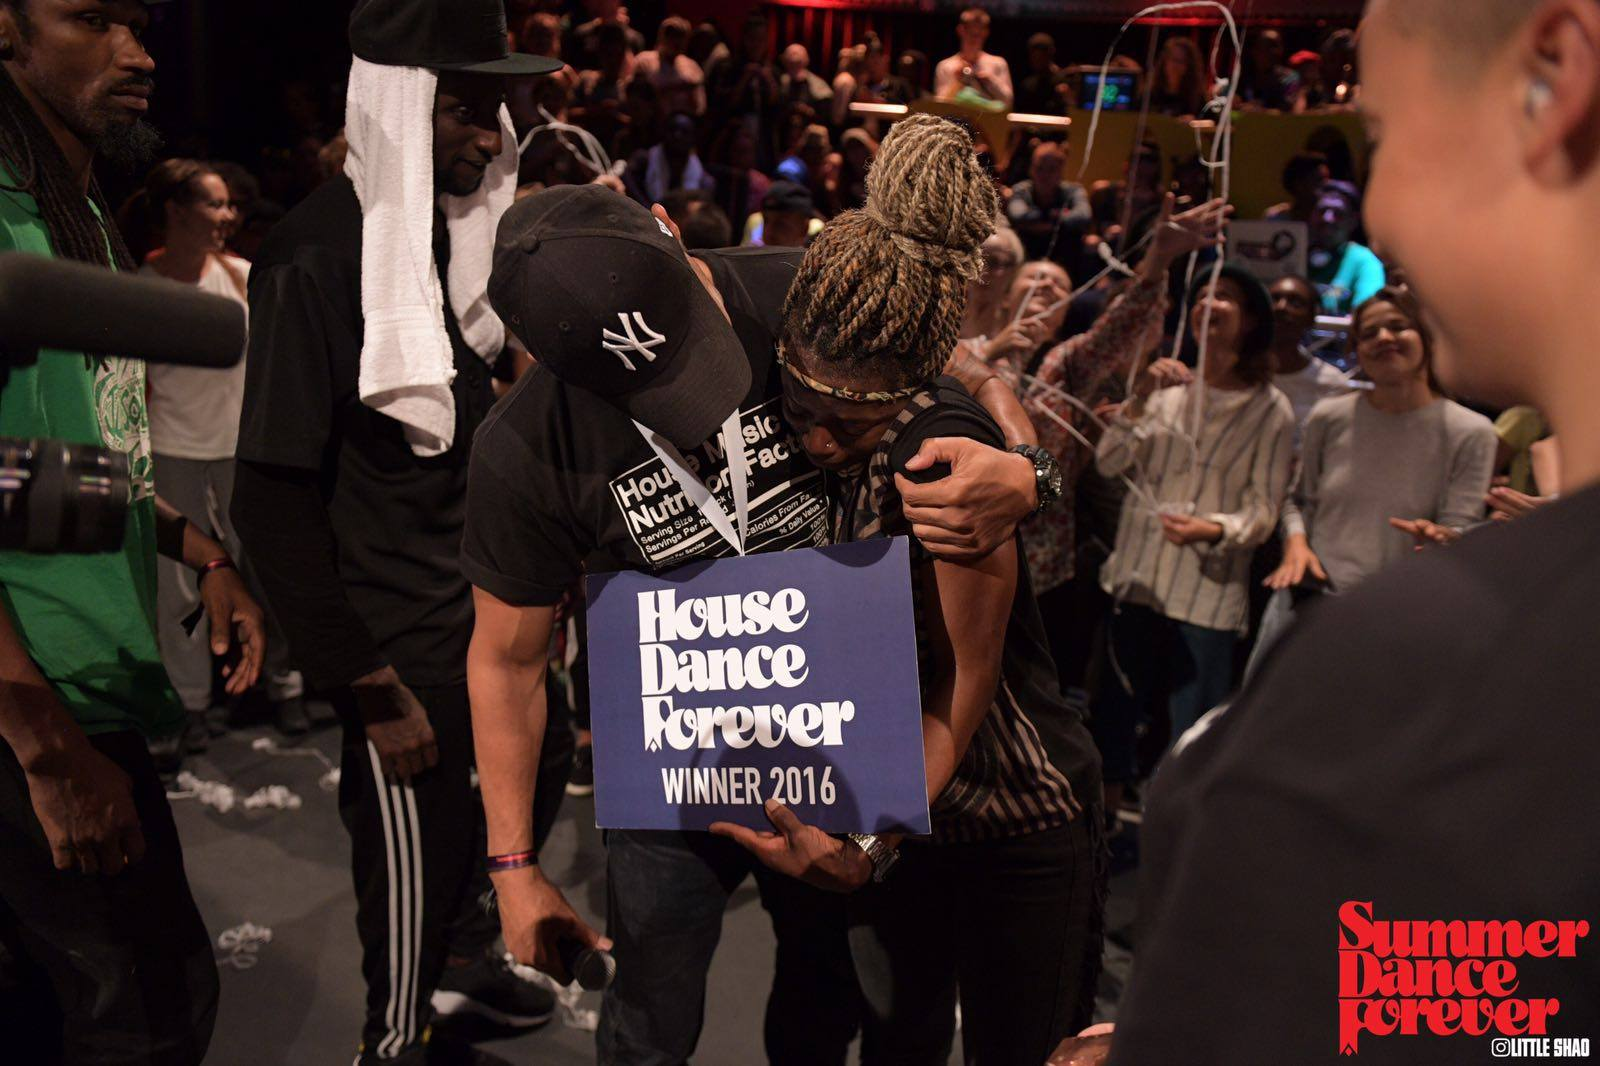 Toyin wins House Dance Forever 2016